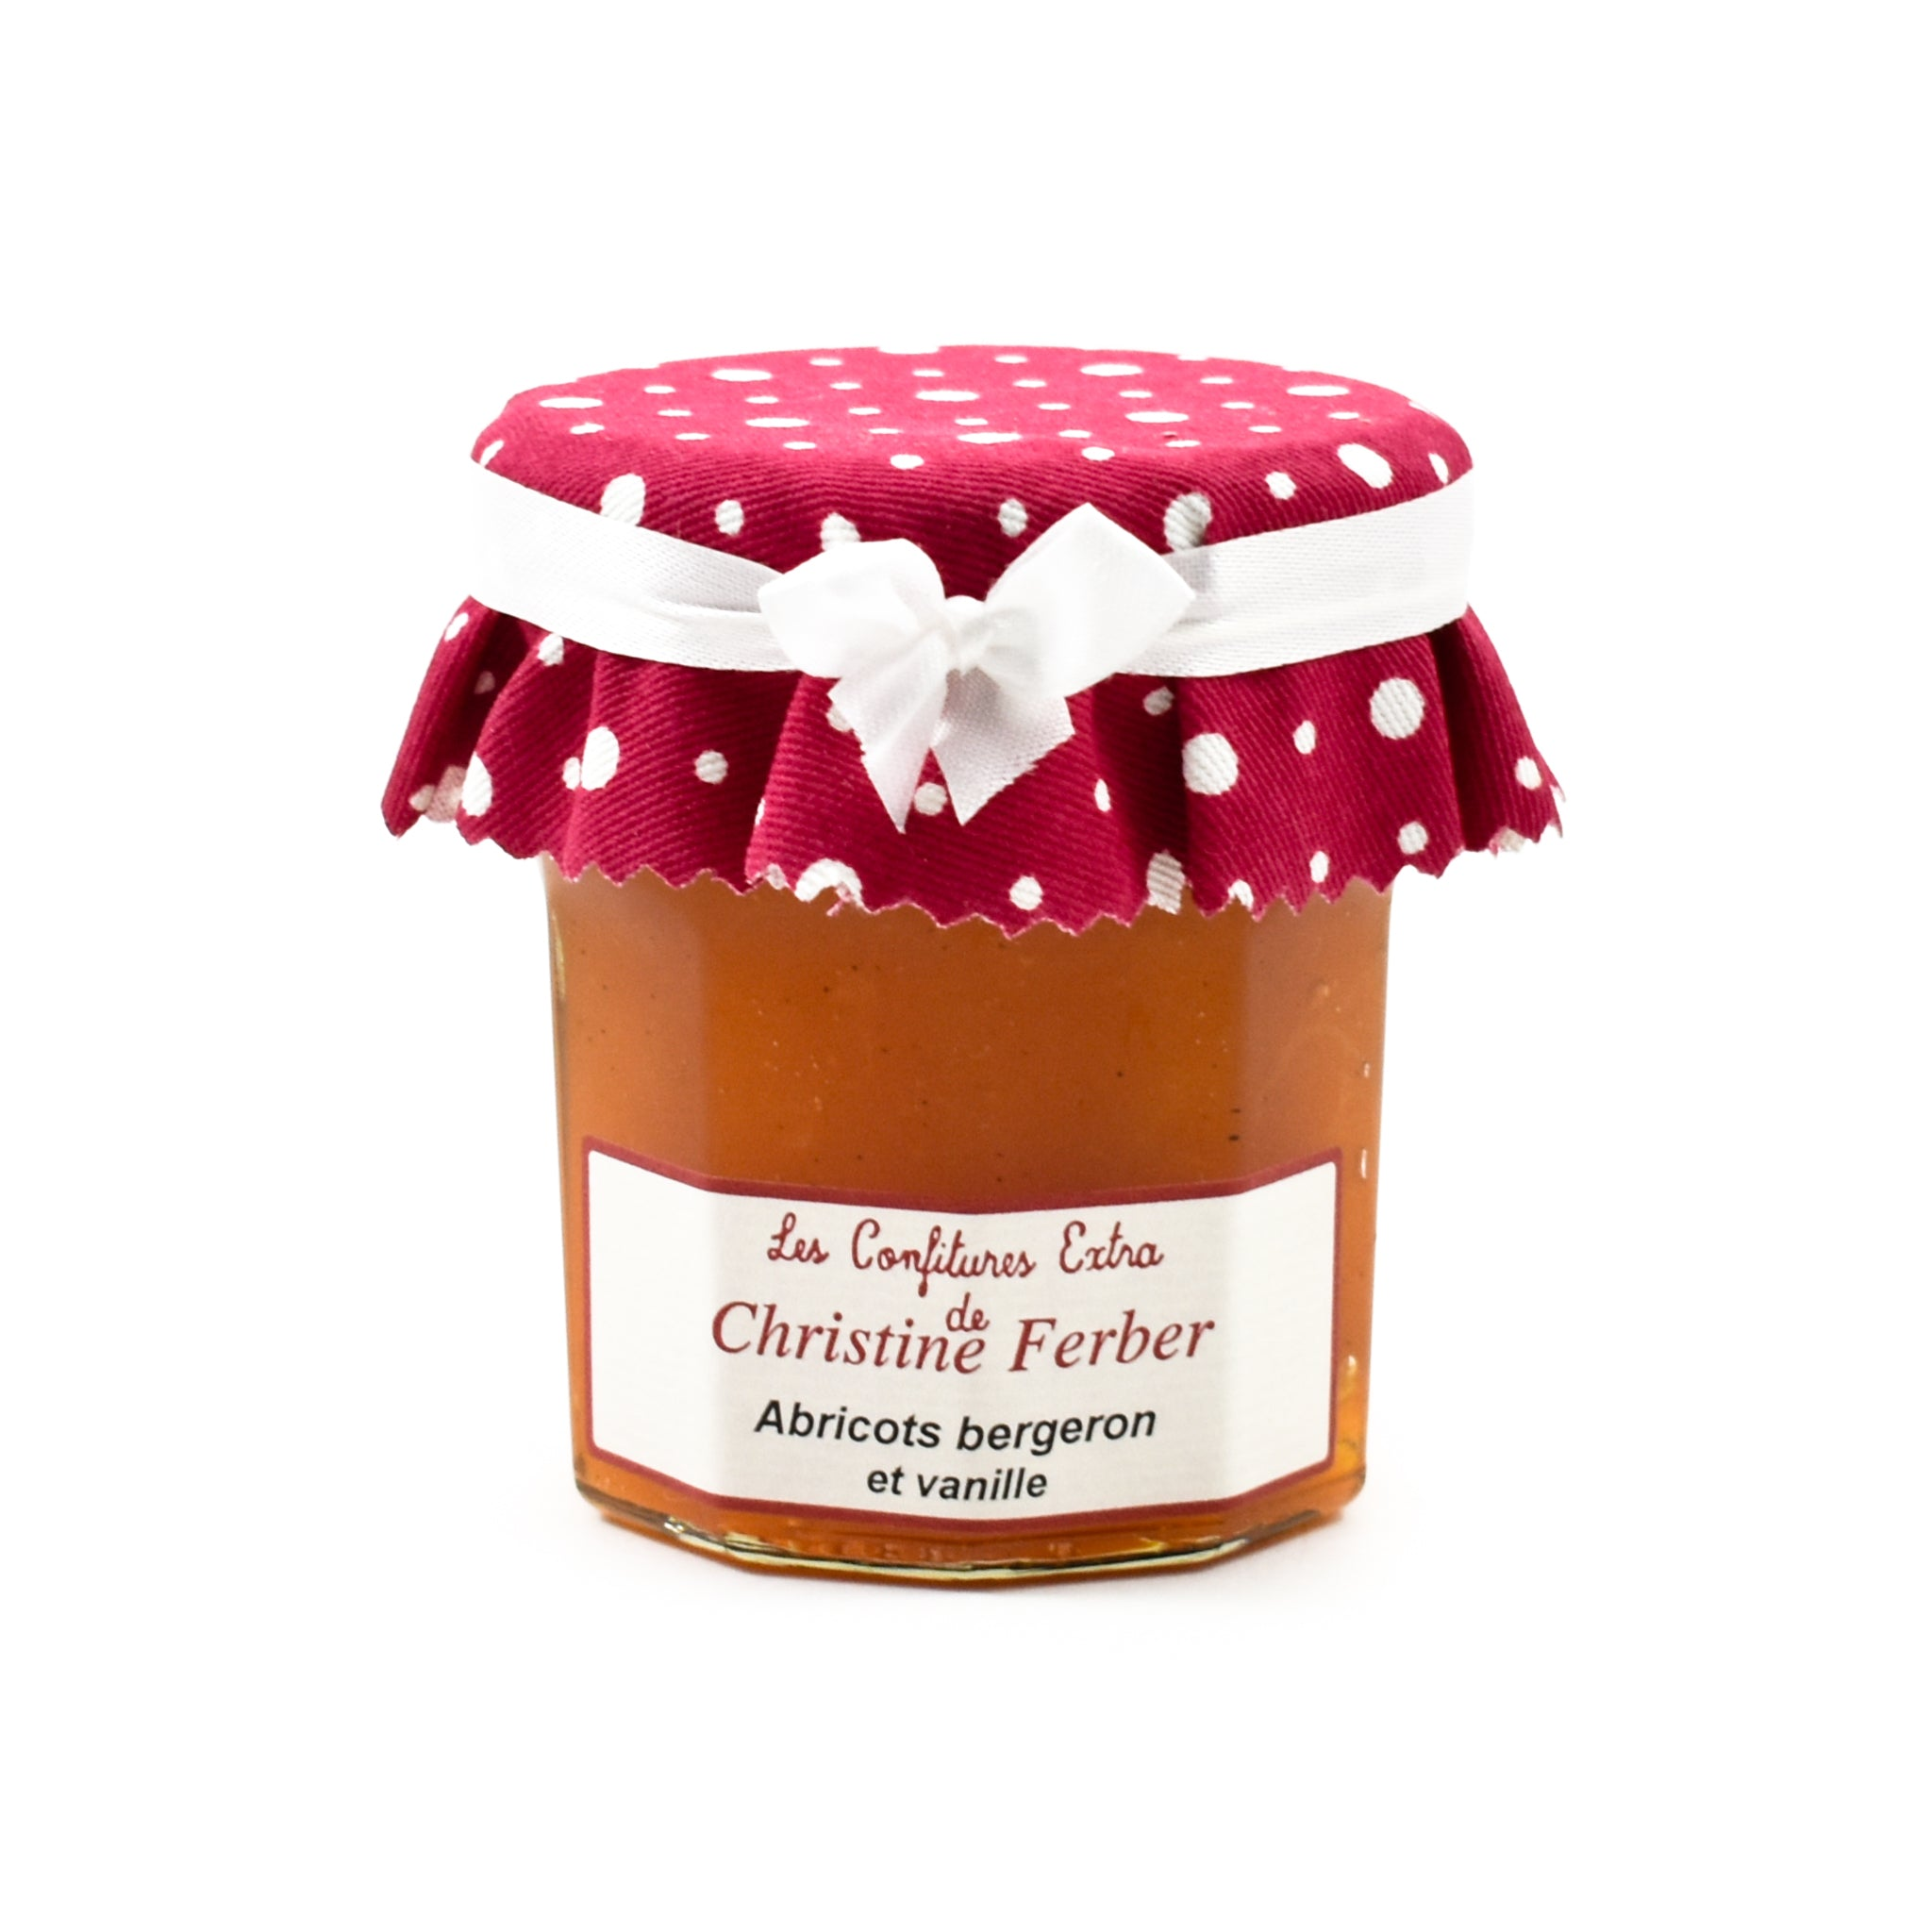 Christine Ferber Bergeron Apricot & Vanilla Jam 220g Ingredients Jam Honey & Preserves French Food